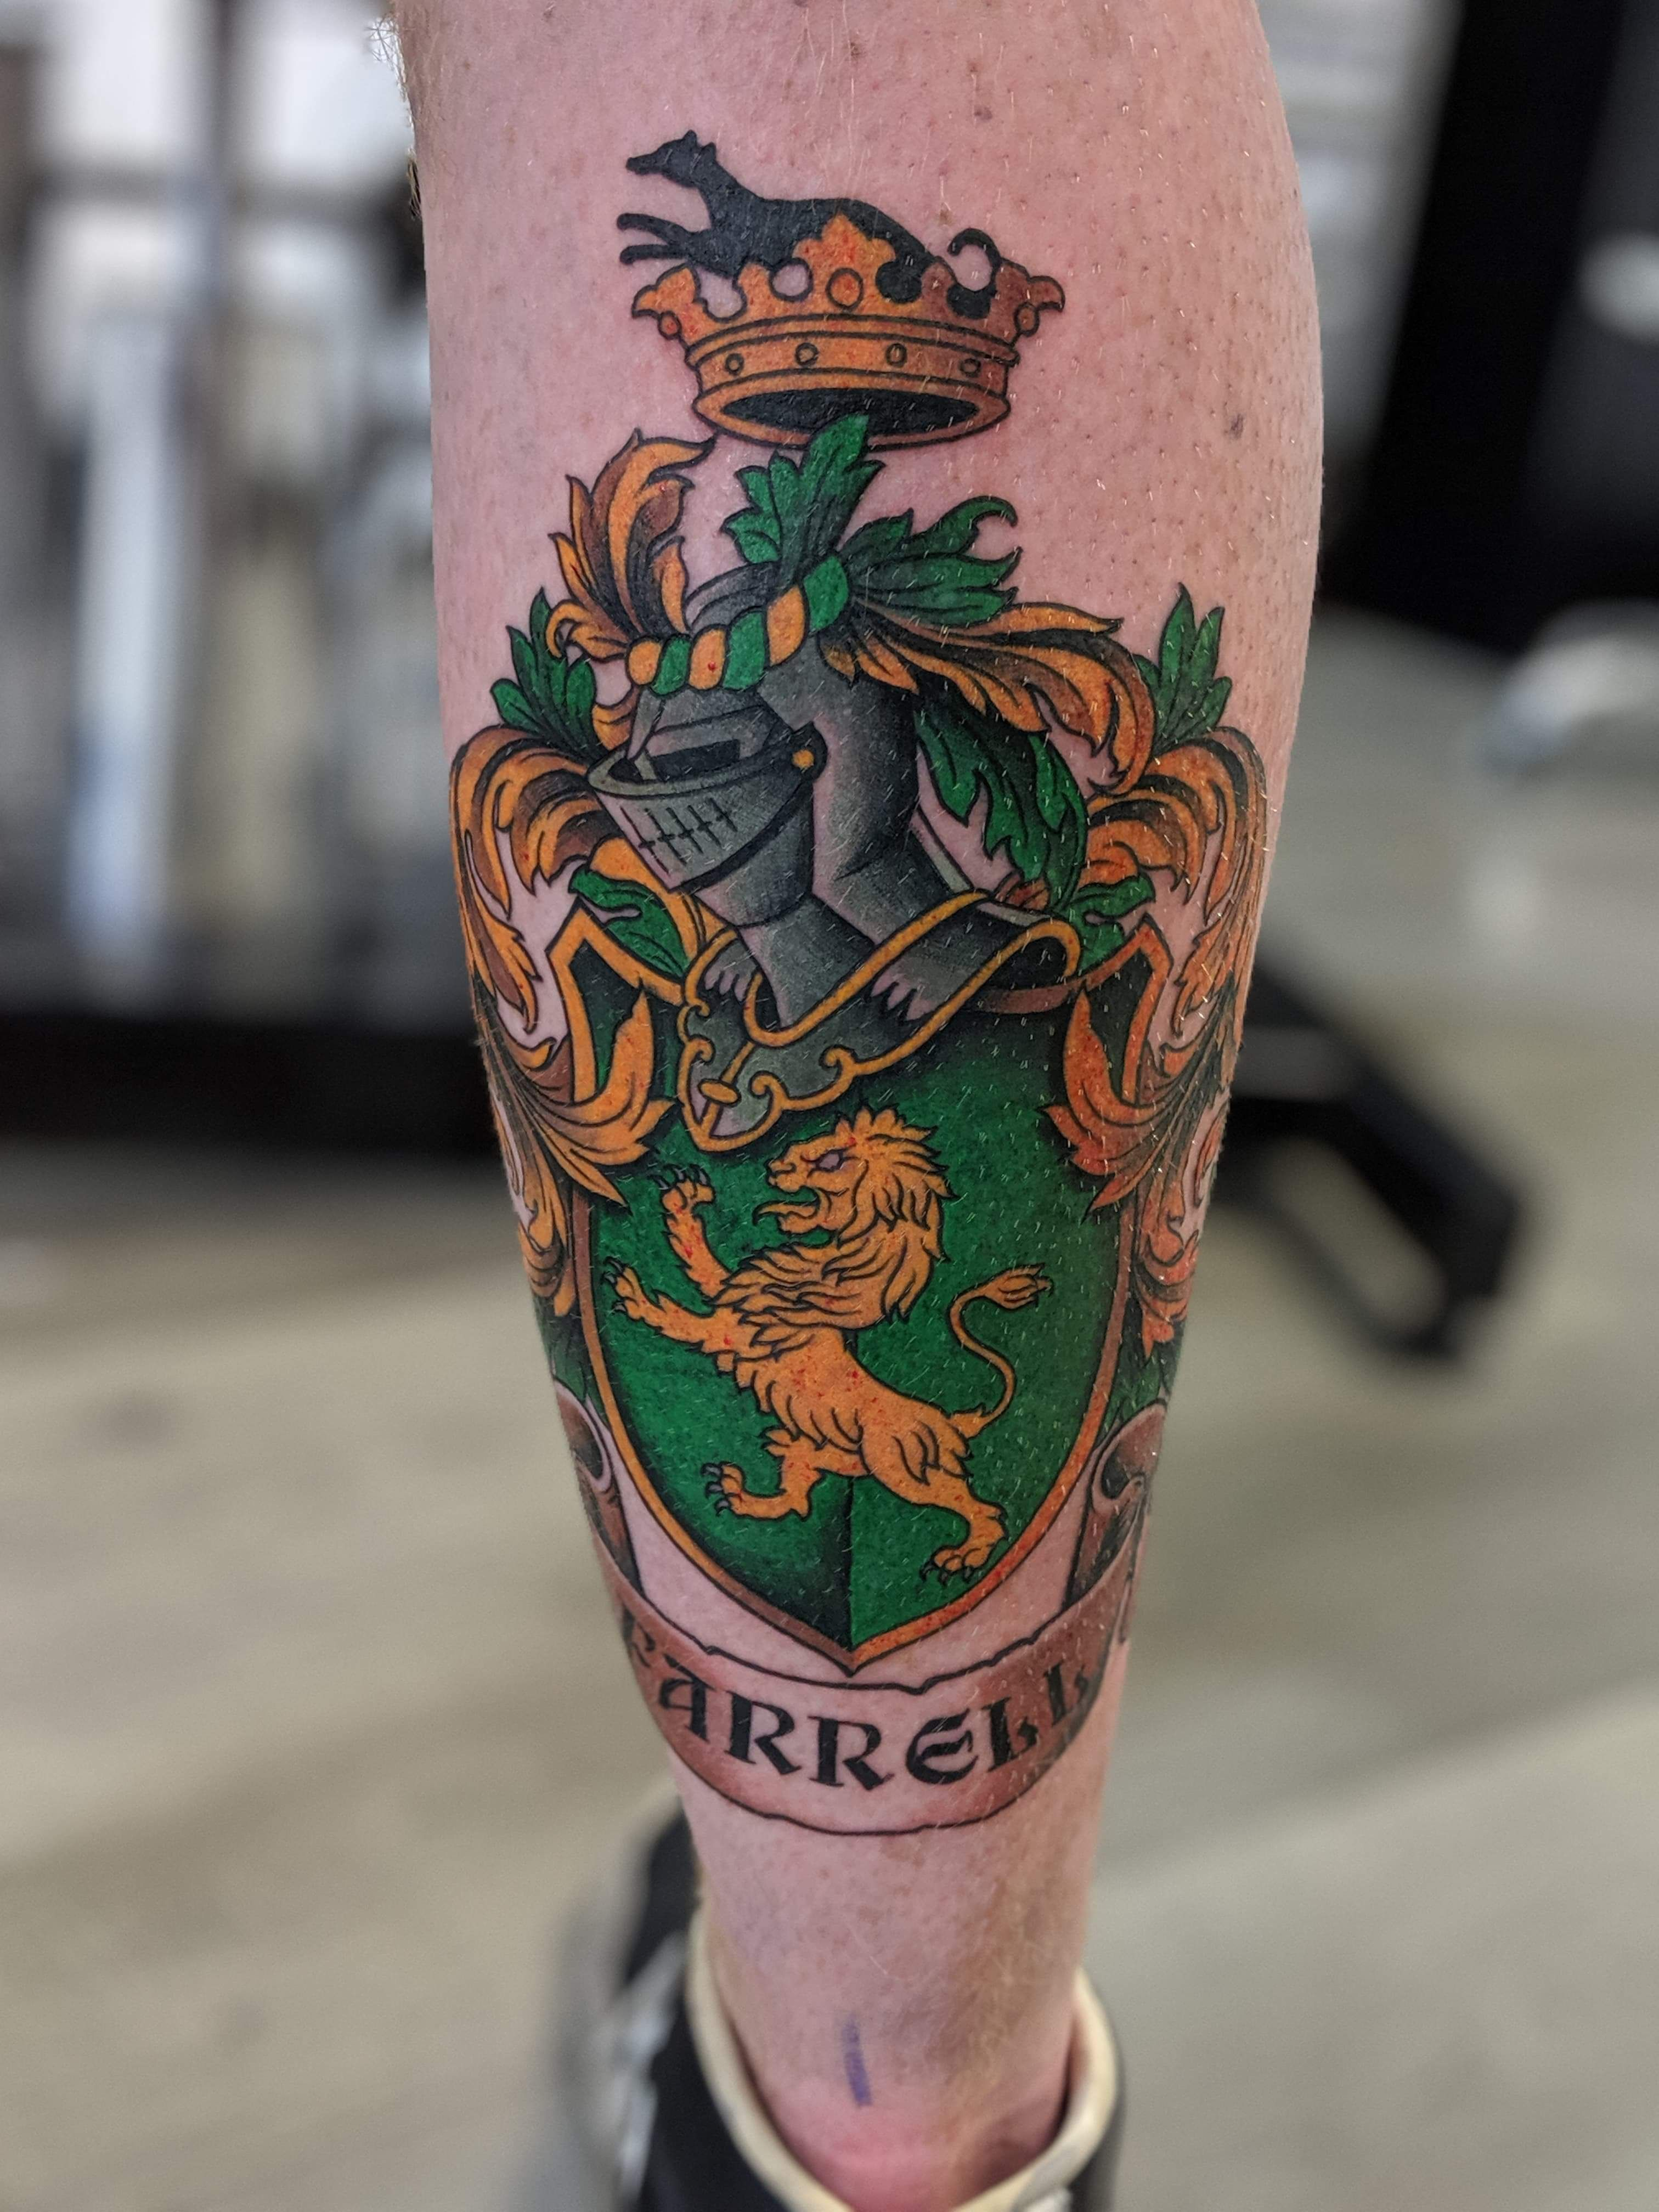 Pin by Zach G. on Tattoo idea(s) in 2020 Family crest